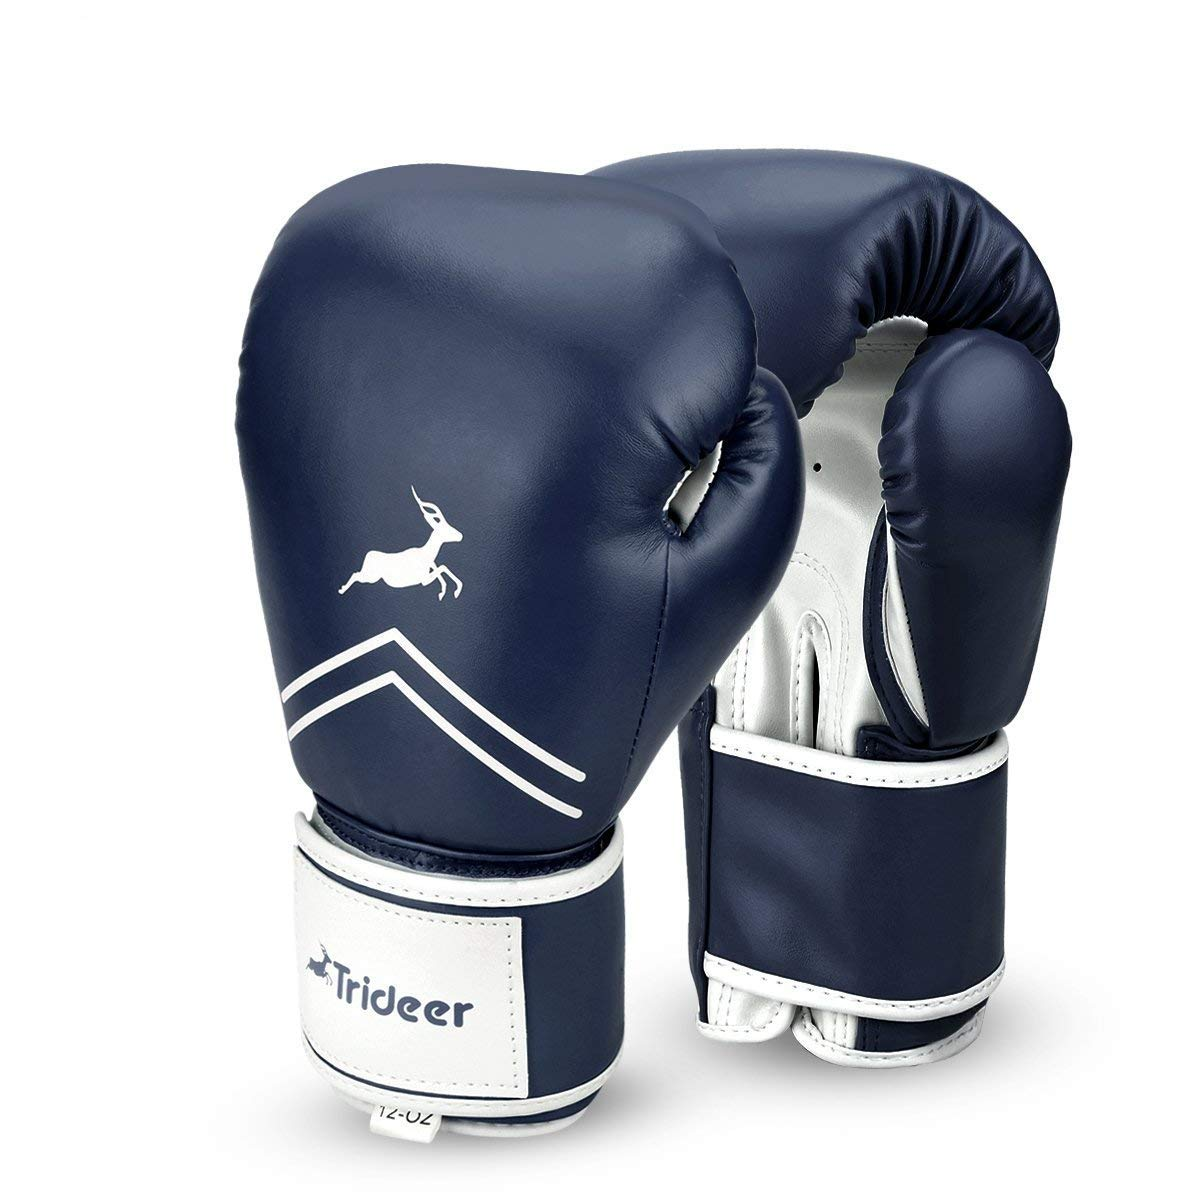 Trideer Pro Grade Boxing Gloves, Kickboxing Bagwork Gel Sparring Training Gloves, Muay Thai Style Punching Bag Mitts, Fight Gloves Men & Women (Midnight Blue, 12 oz)